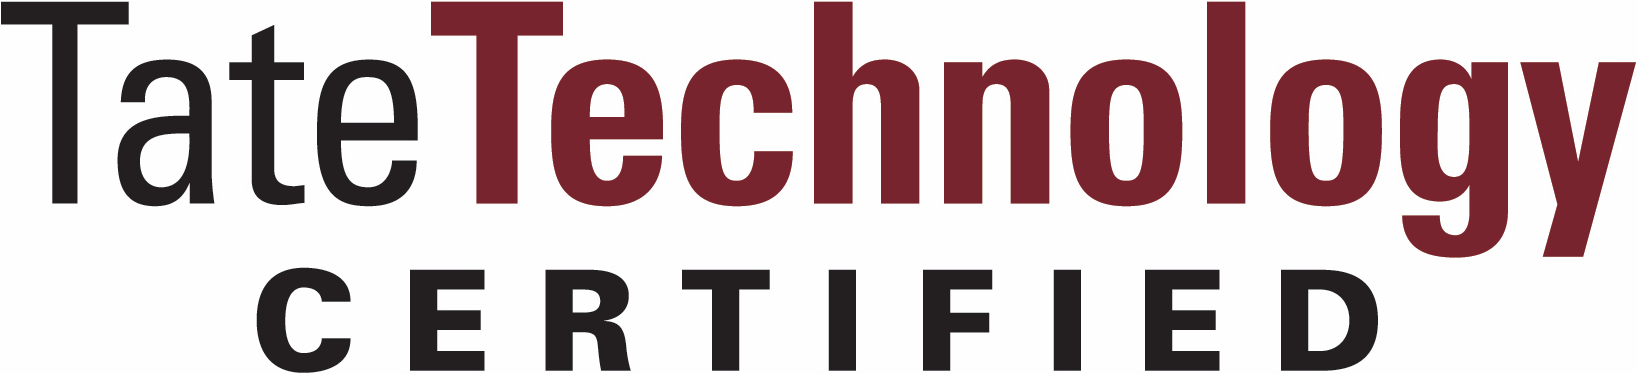 Technology Certification Logo